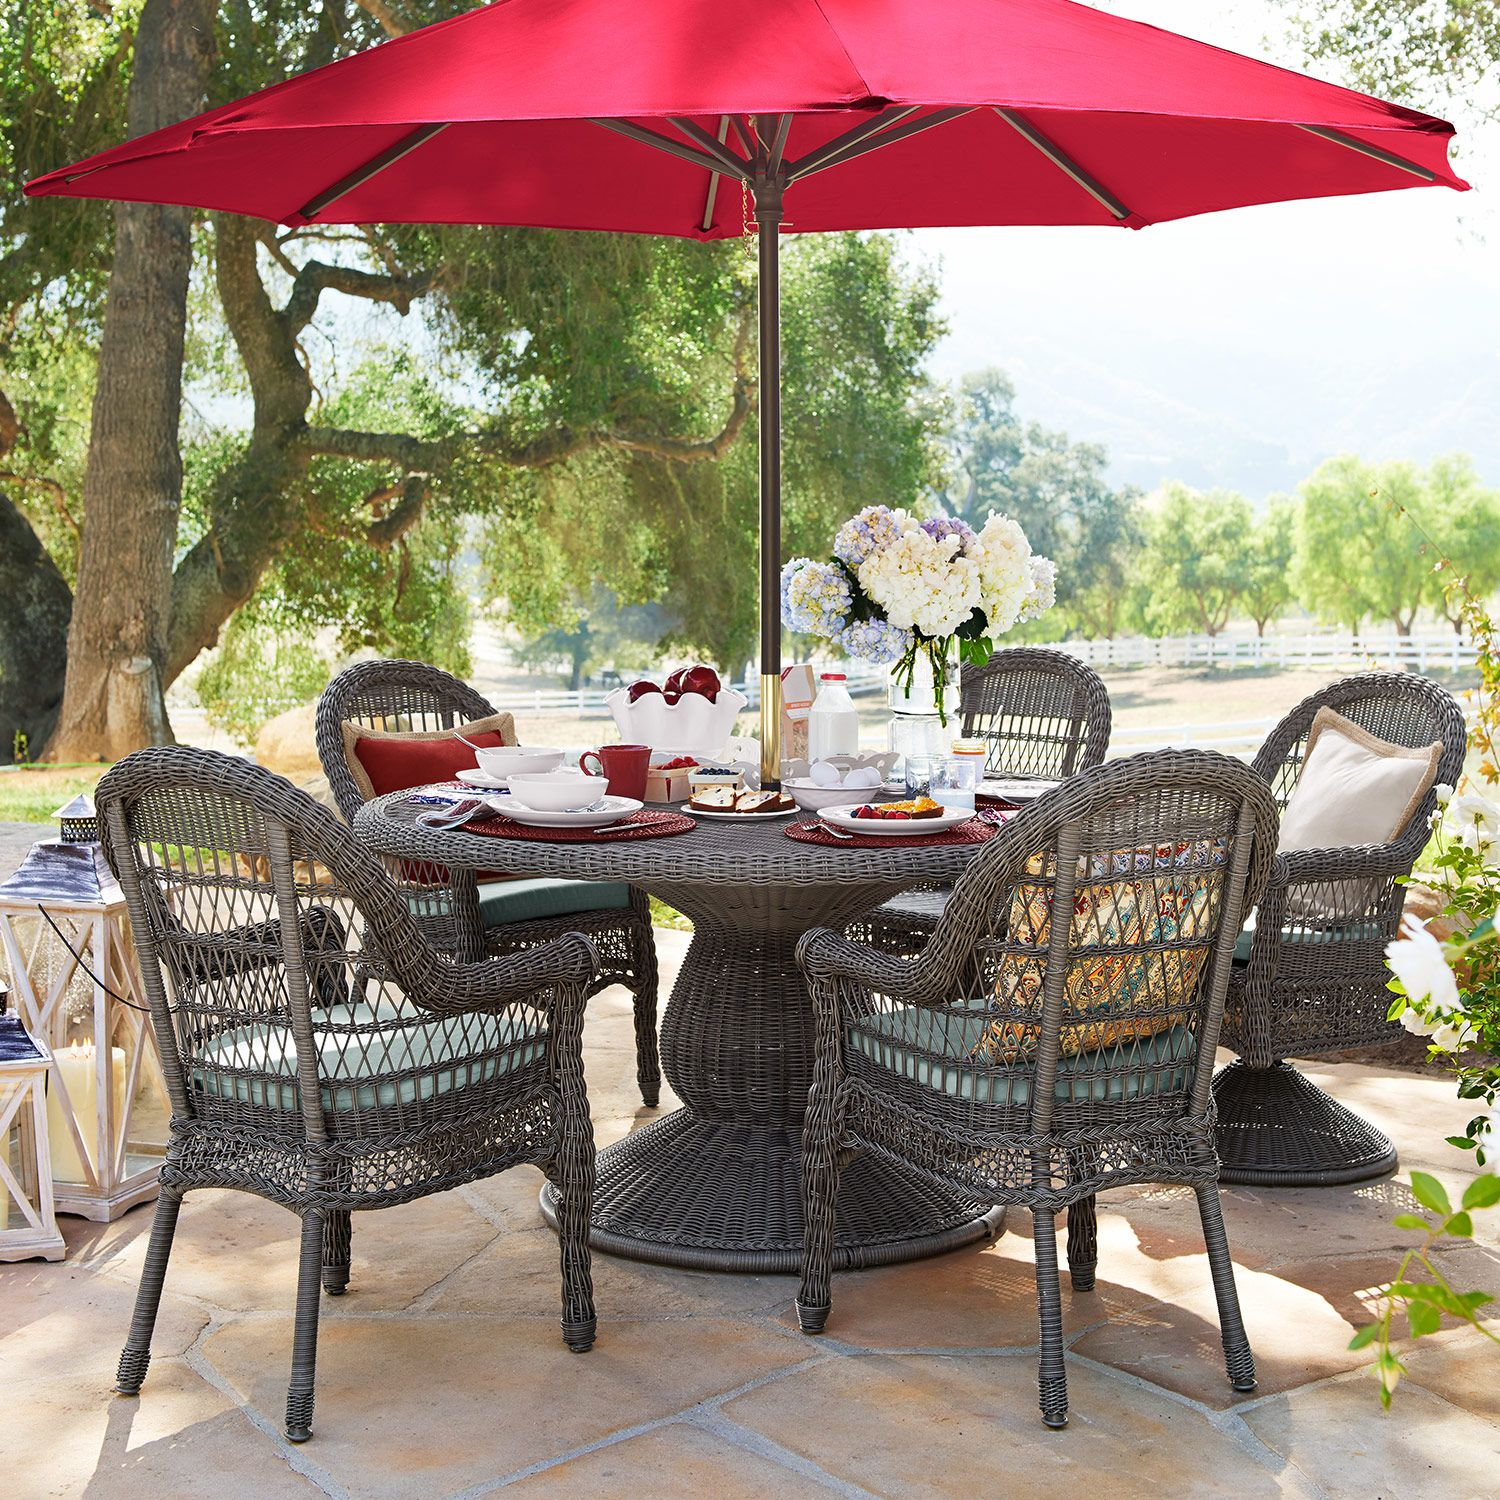 Sunset Pier Gray Dining Chair   Gray dining chairs, Dining chairs ...